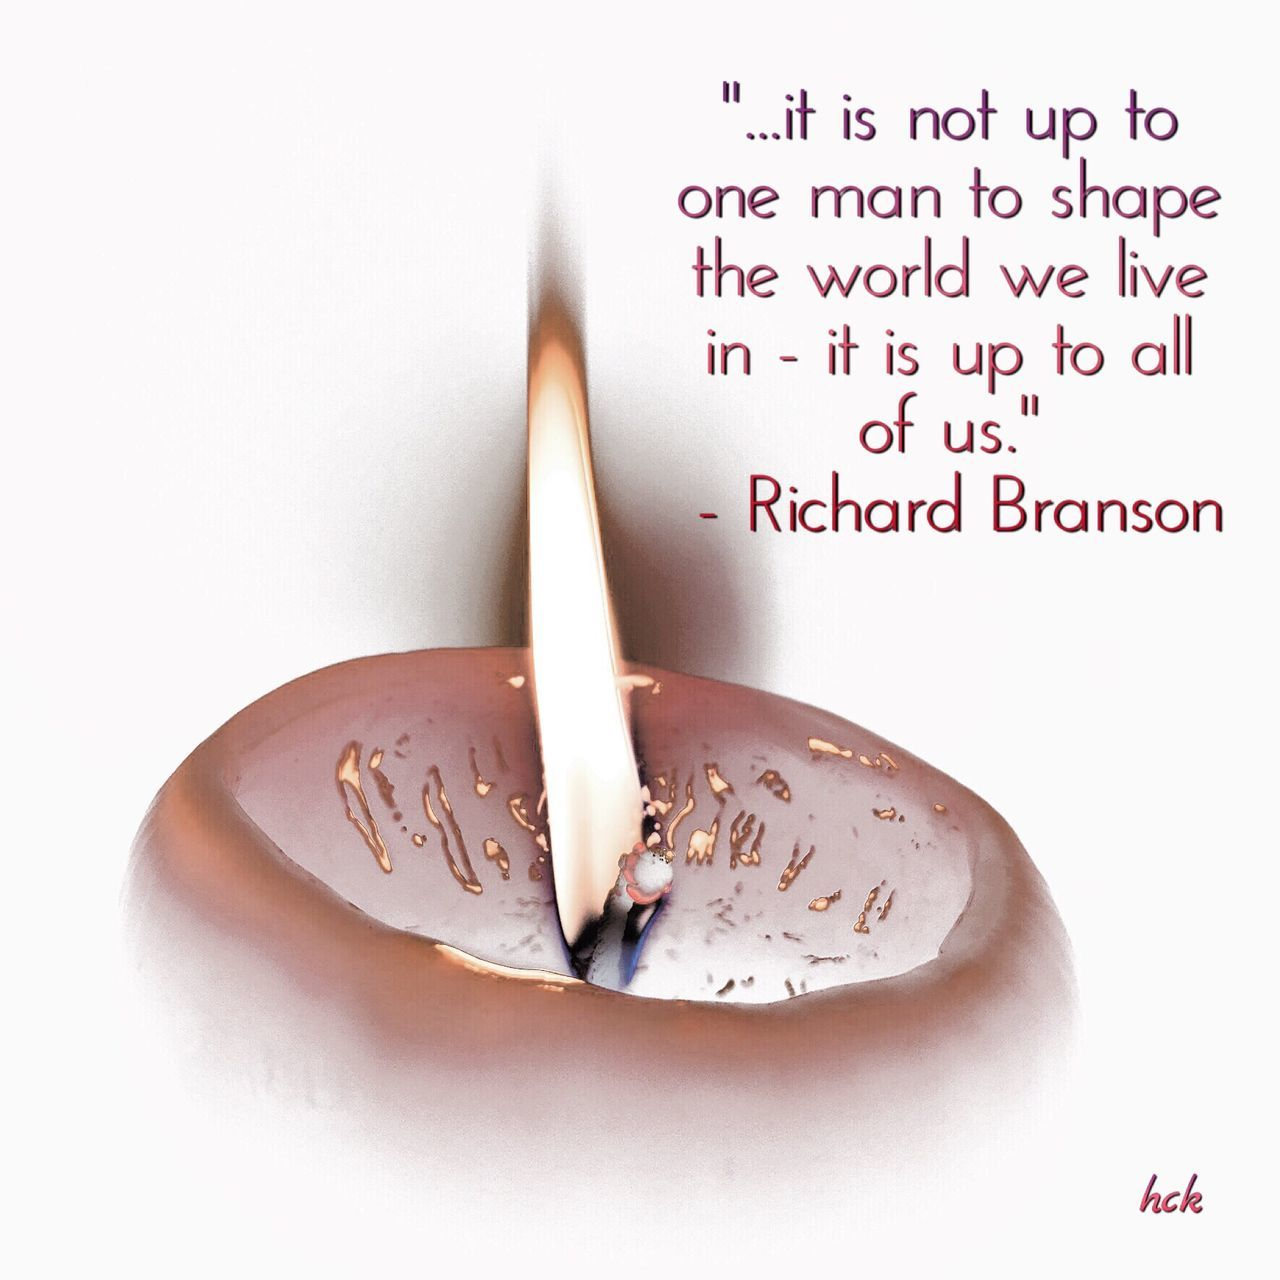 """""""... it is not up to one man to shape the world we live in - it is up to all of us."""" - Richard Branson Text Burning Close-up No People Be The Change Be The Light Be An Inspiration It Takes A Village Unity"""